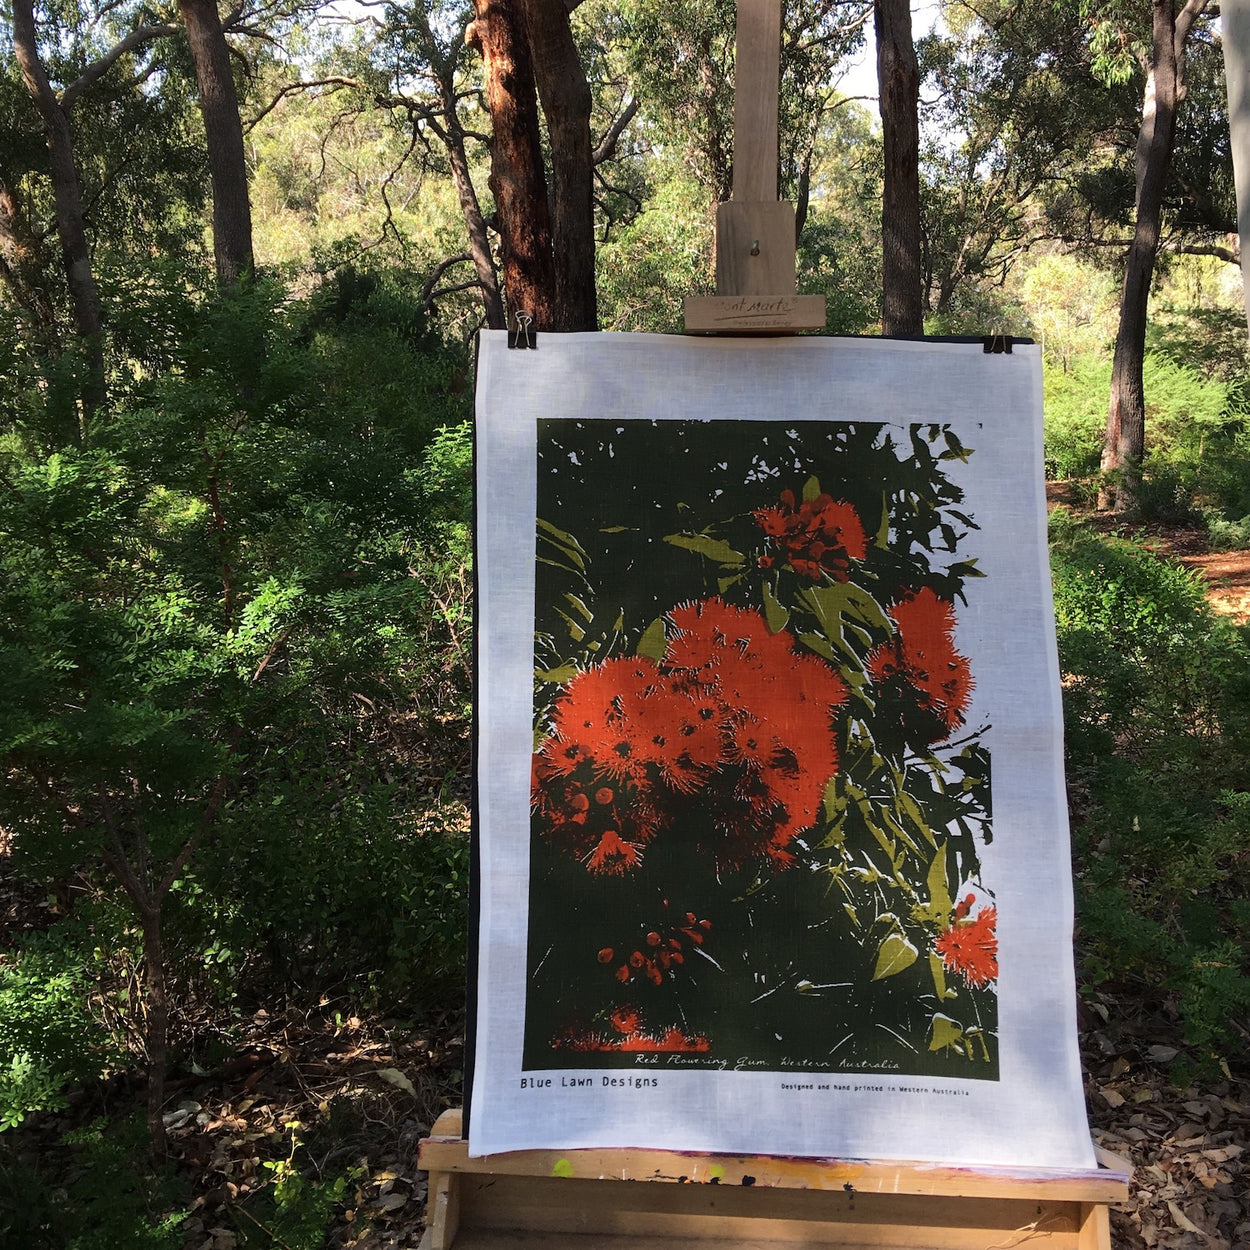 Photograph of a red flowering gum tea towel on an easel in a forest setting.